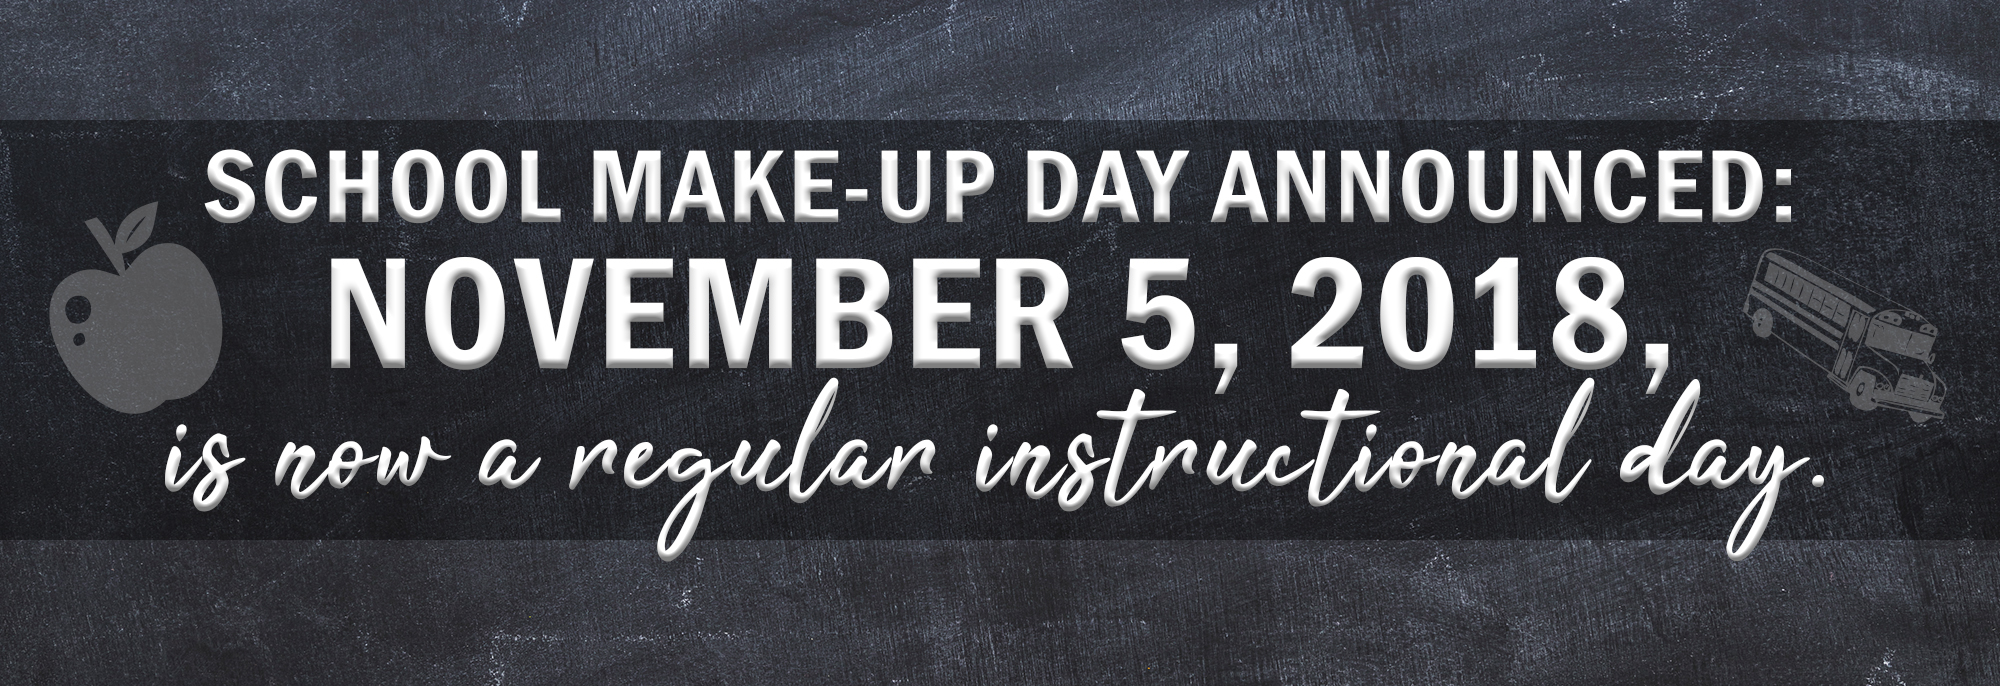 School Make-Up Day Announced: November 5, 2018, is now a regular instructional day.